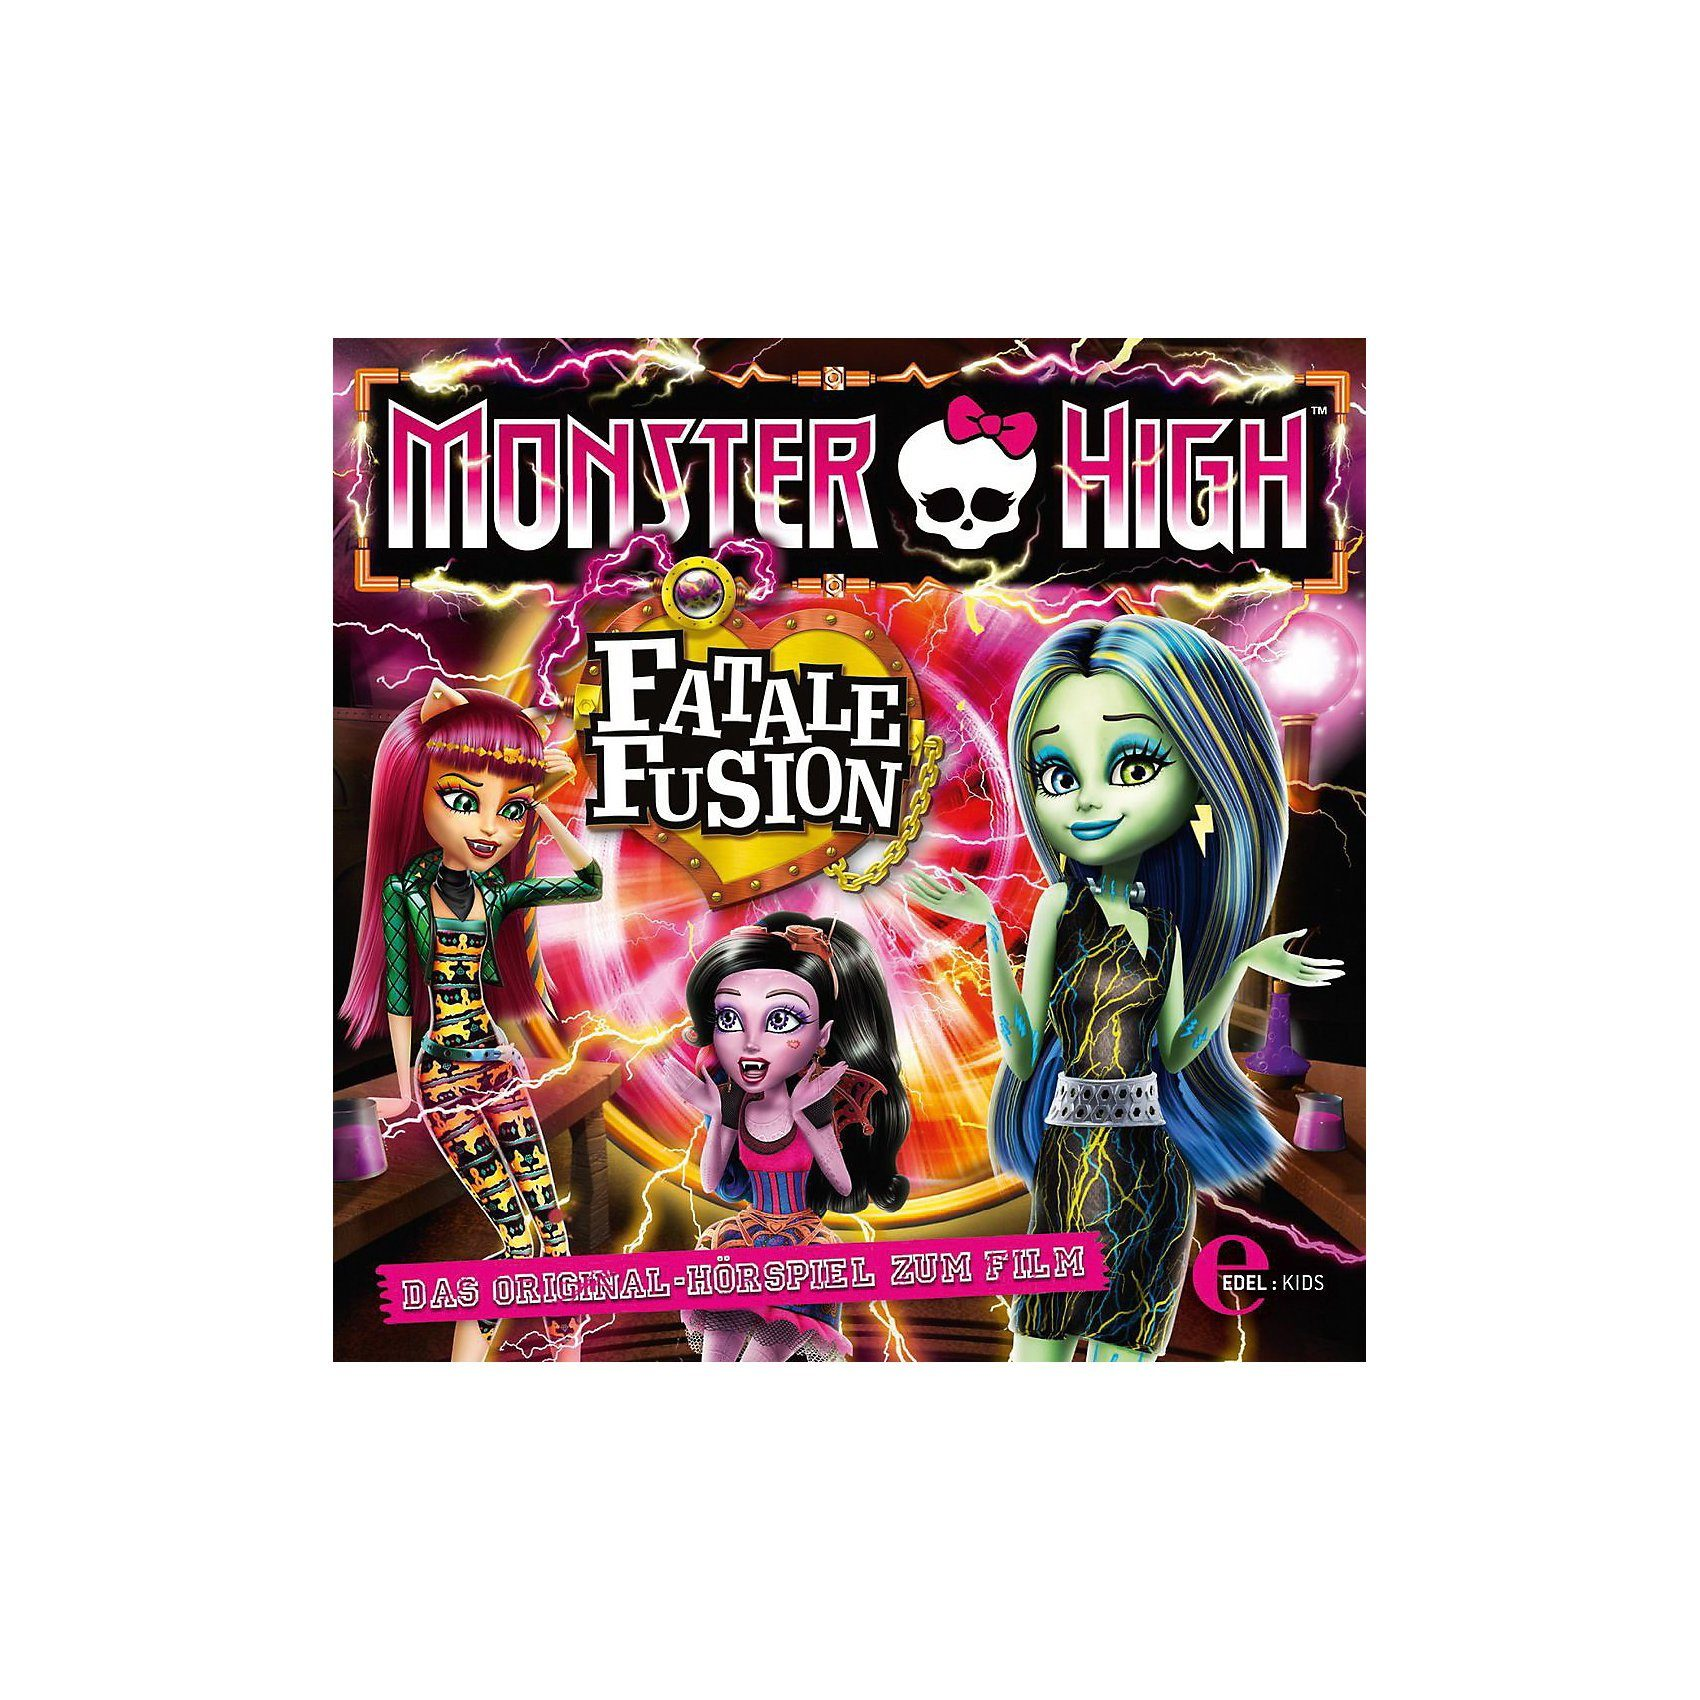 Edel CD Monster High - Fatale Fusion